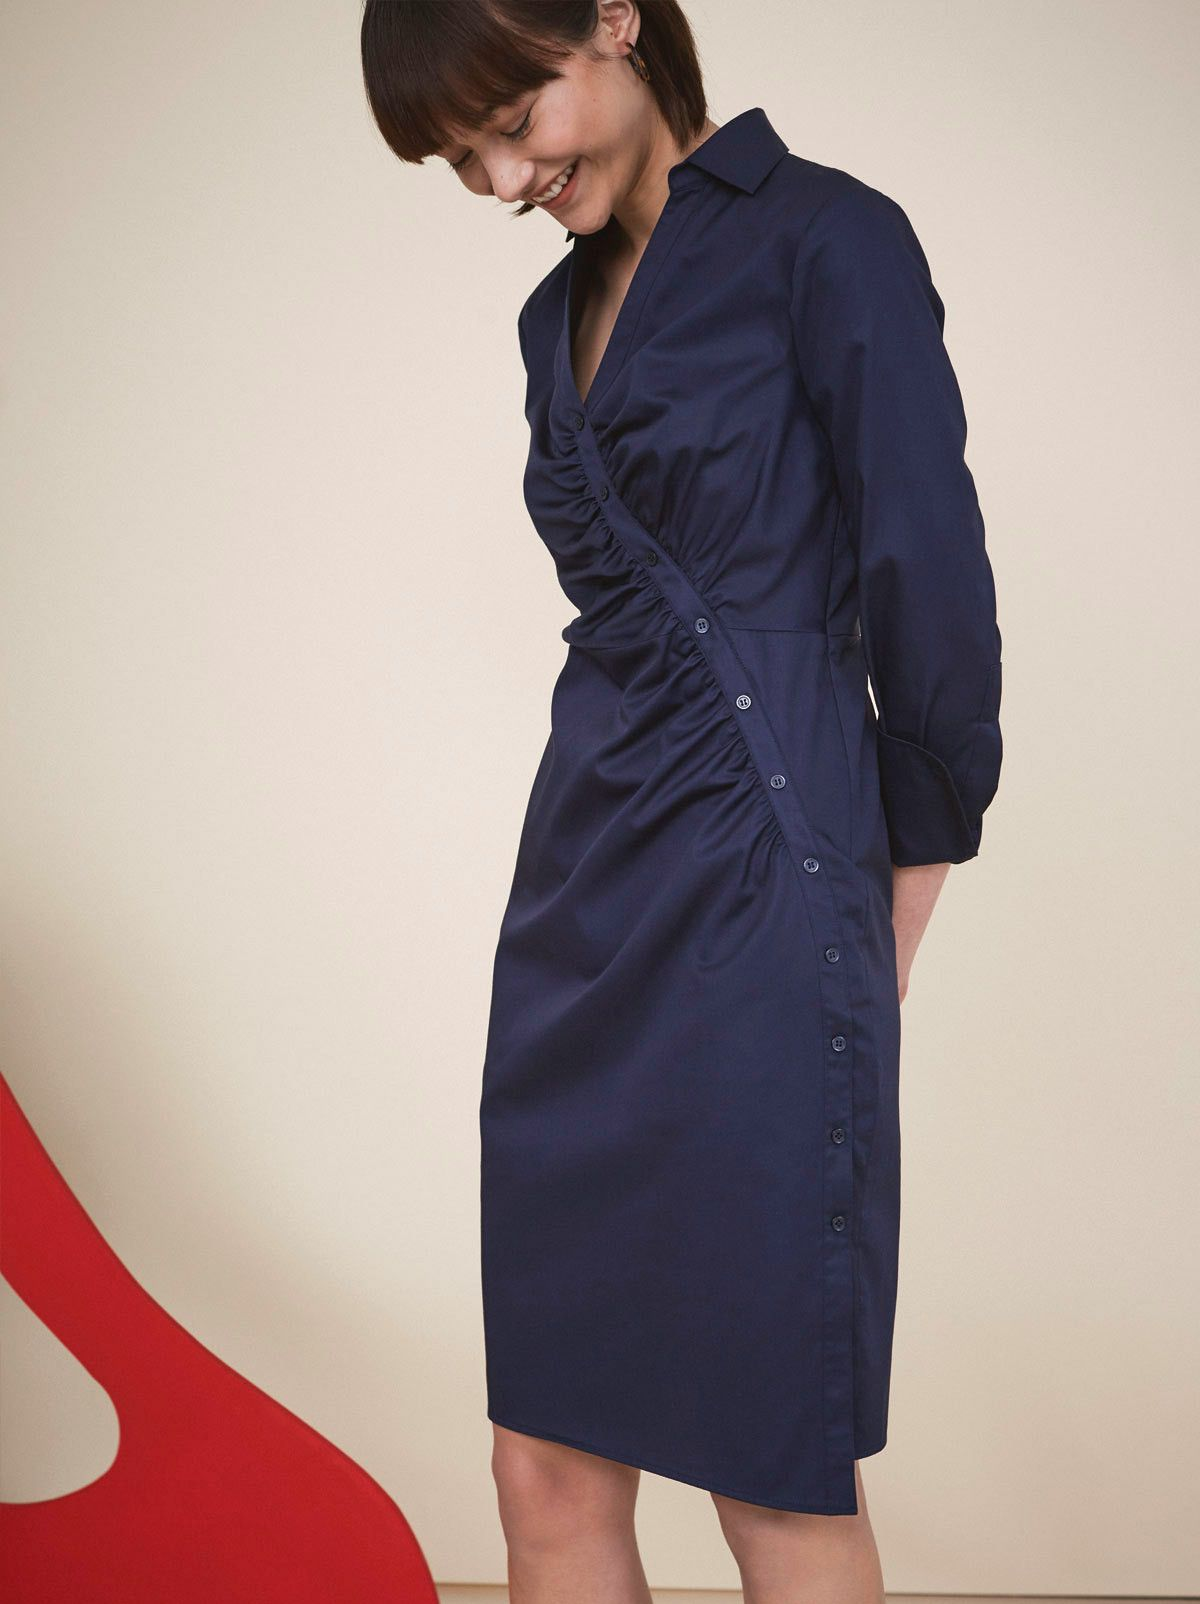 e93a9866a88a Natalia Navy Fitted Shirt Dress by KITRI Studio. We reworked a button up  shirt with